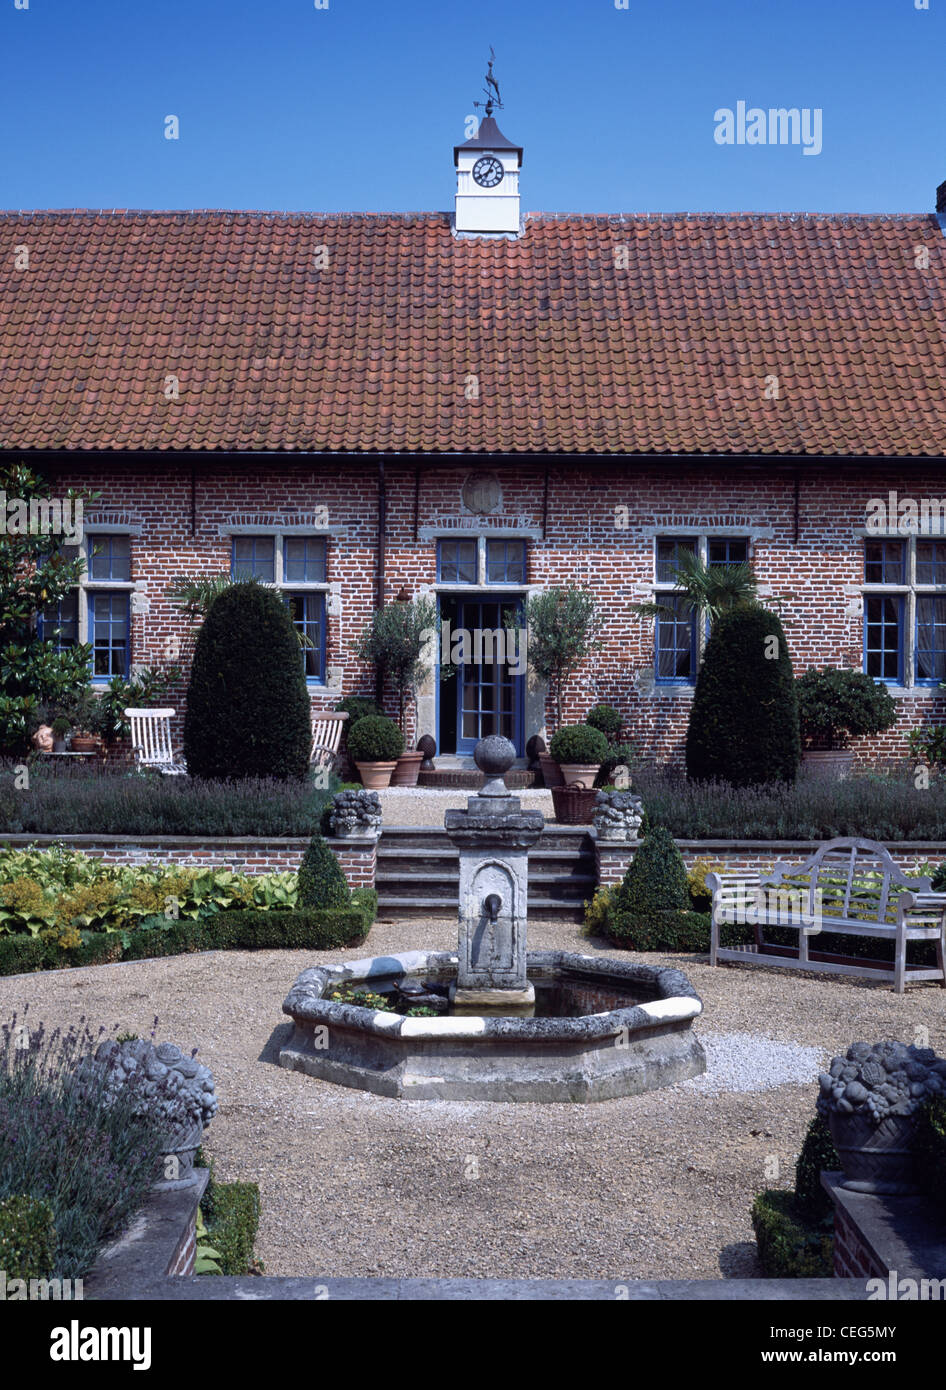 Stone Fountain In Small Pool In Formal Gravel Garden With Lavender Hedge In  Front Single Story Coach House With Clock Tower